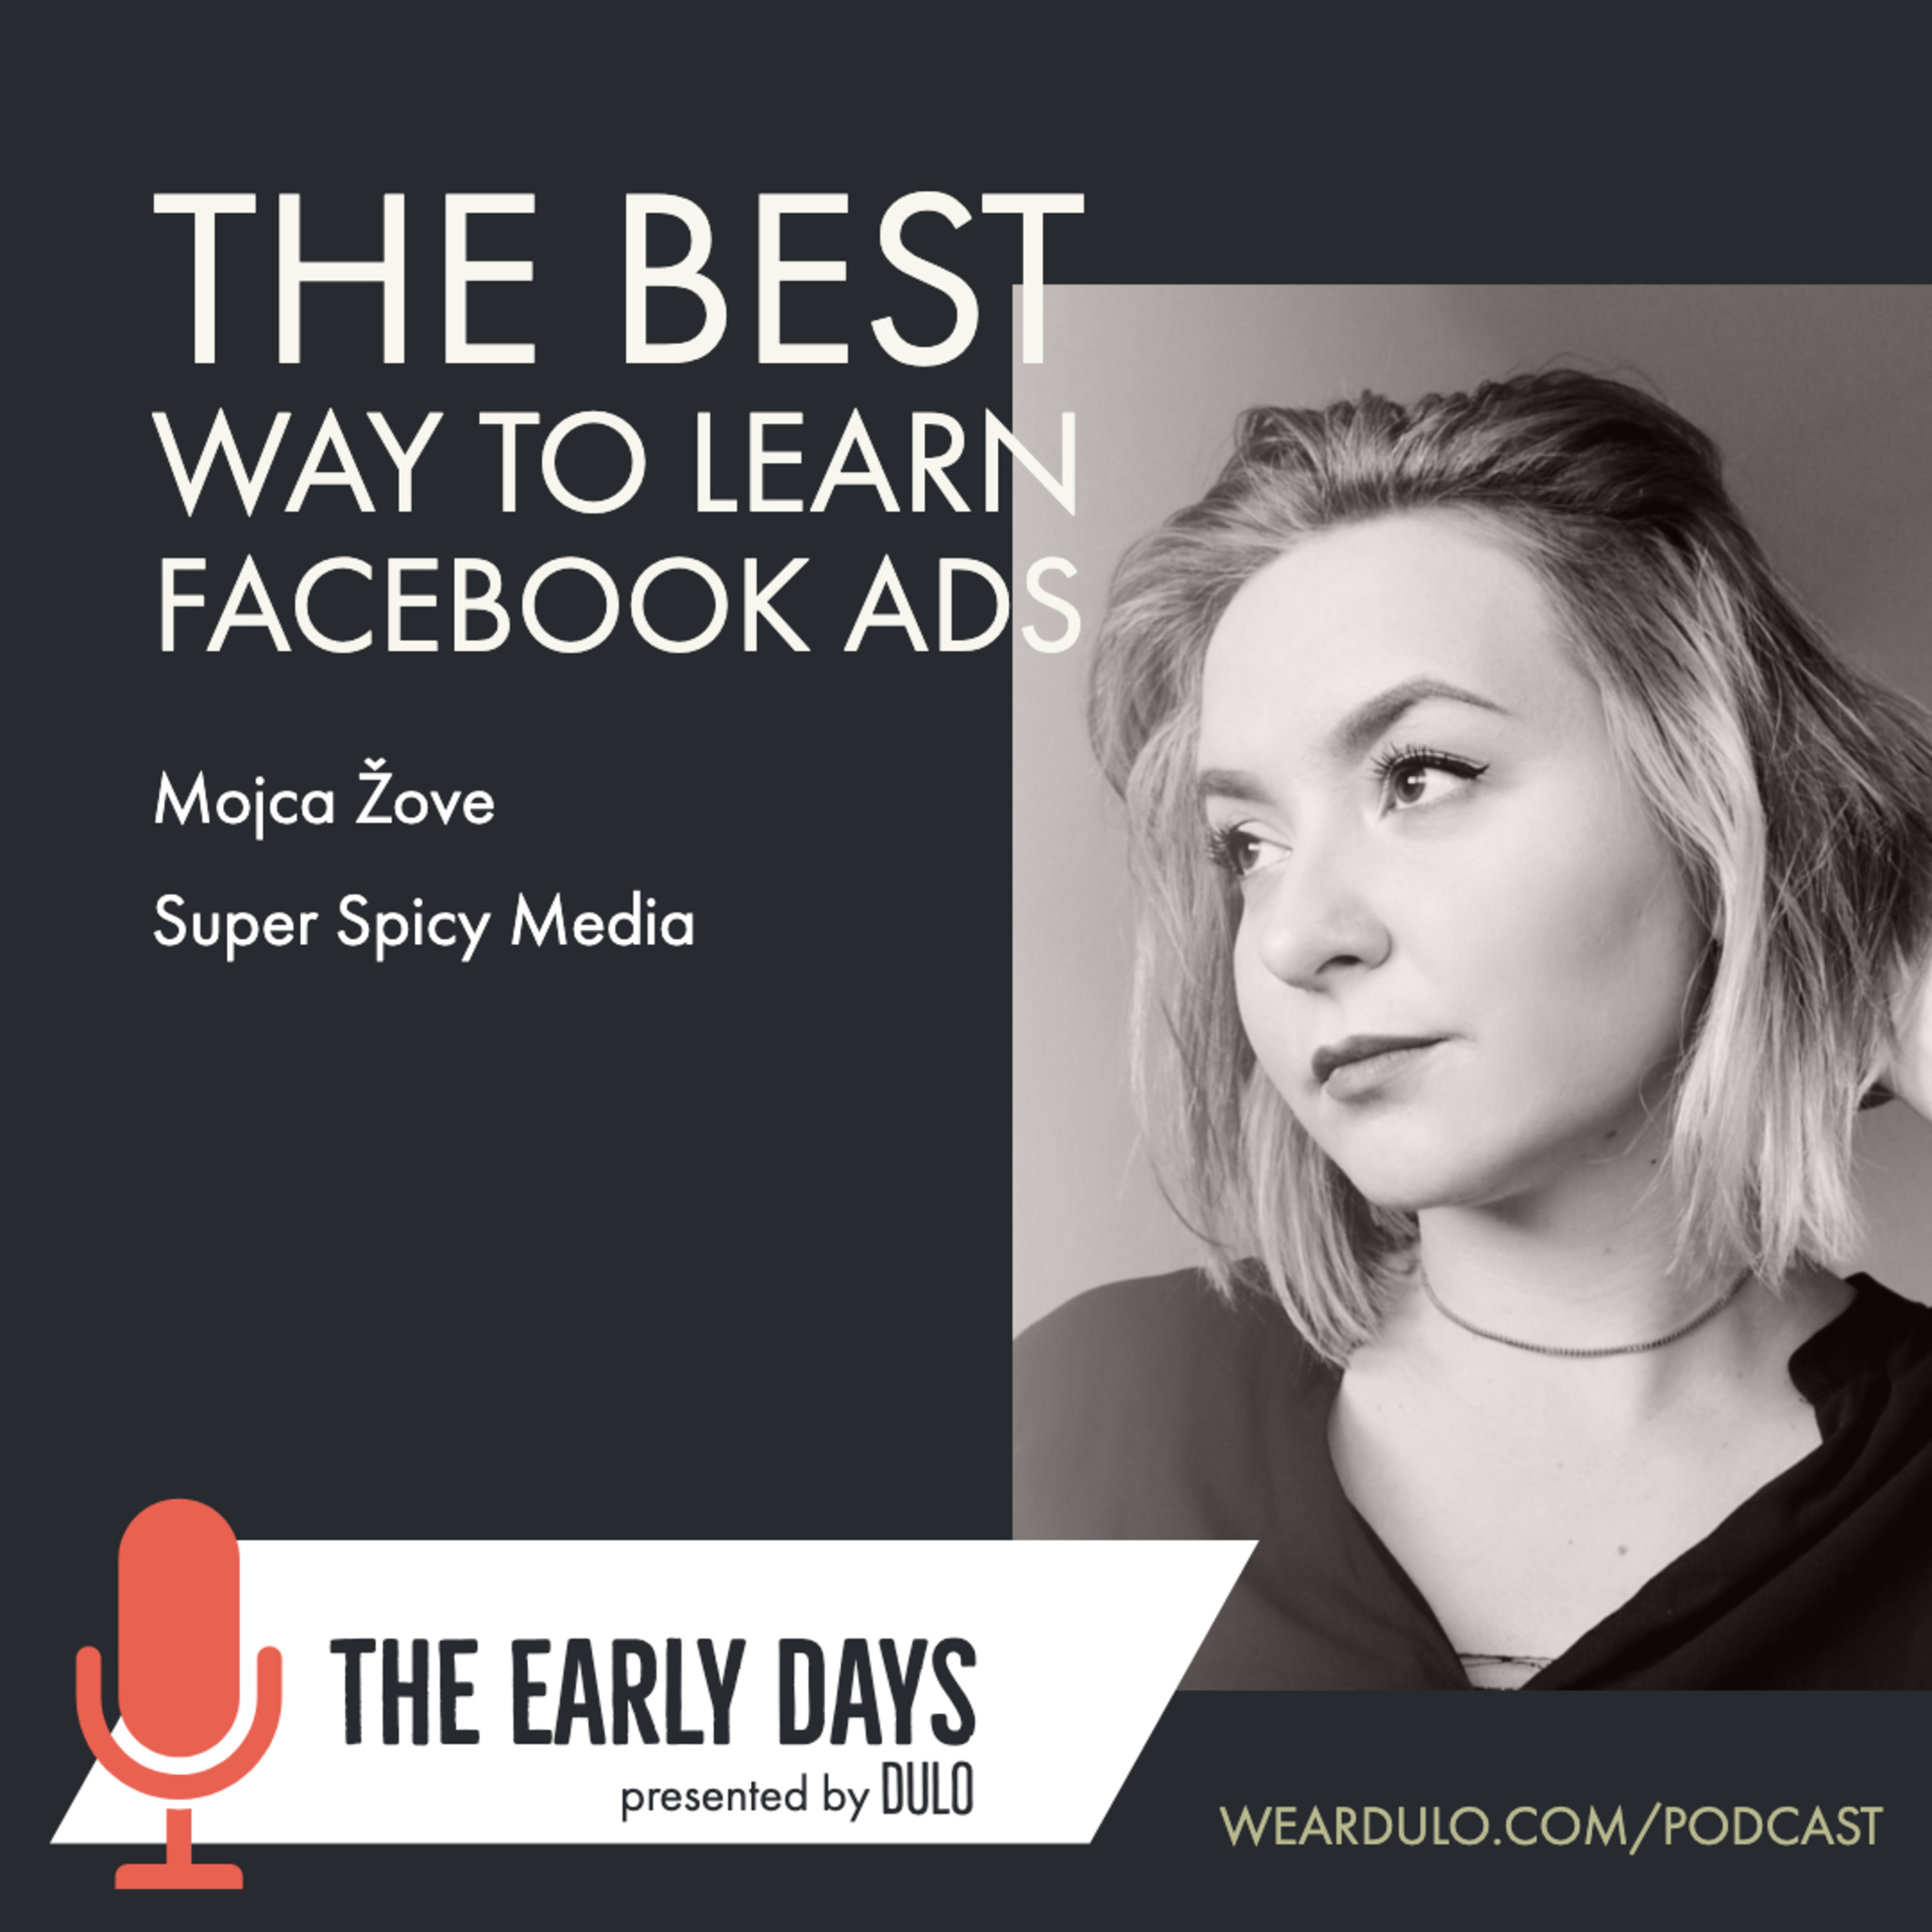 The Best Way to Learn Facebook Ads | The Early Days (S3E6)